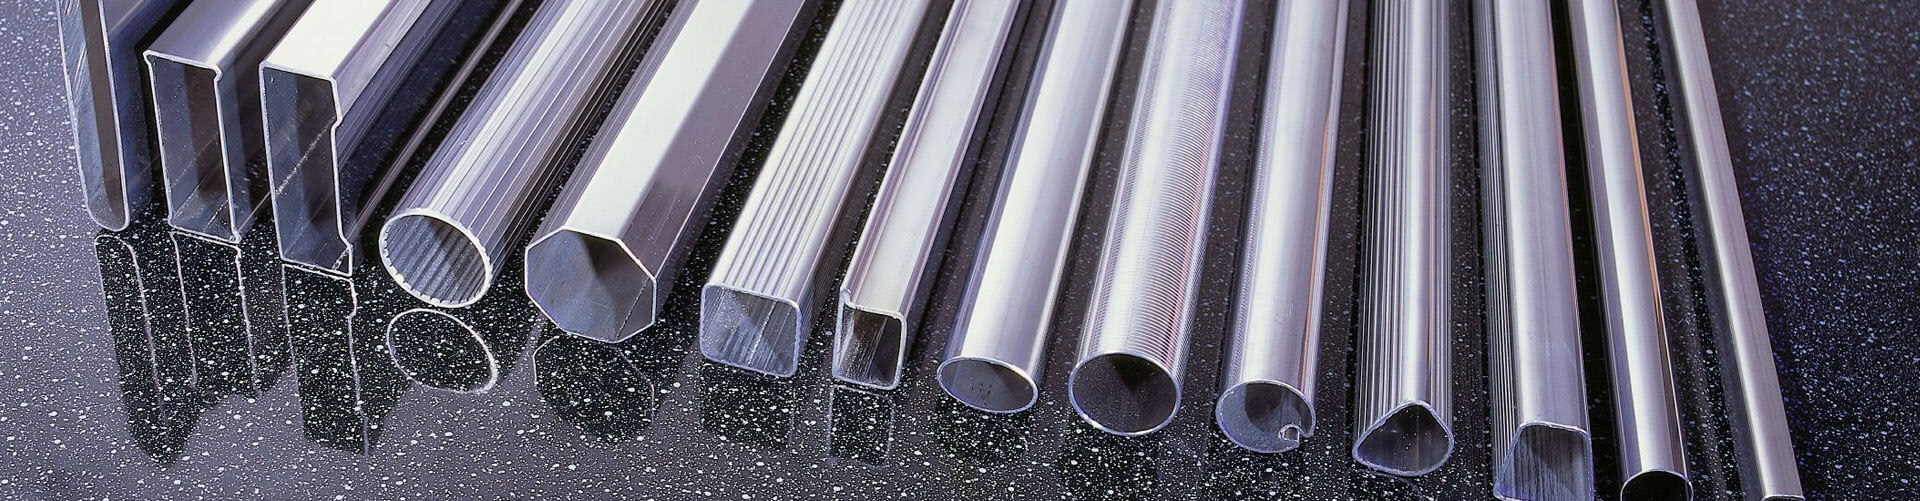 Hastelloy Alloy Tubes